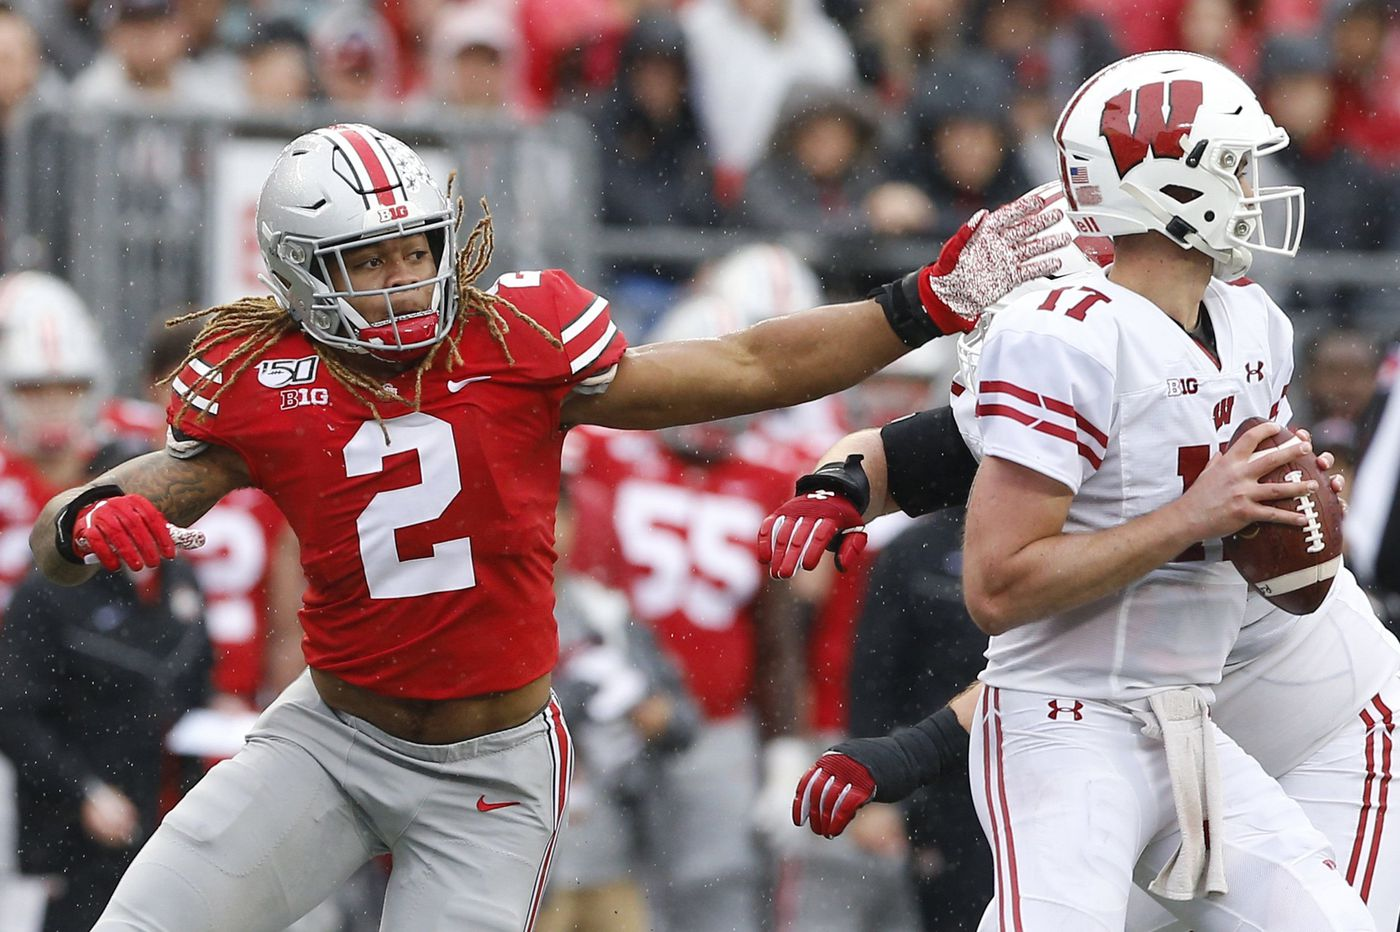 Ohio State's Chase Young well-rested and ready to try to inflict bad memories again on Penn State